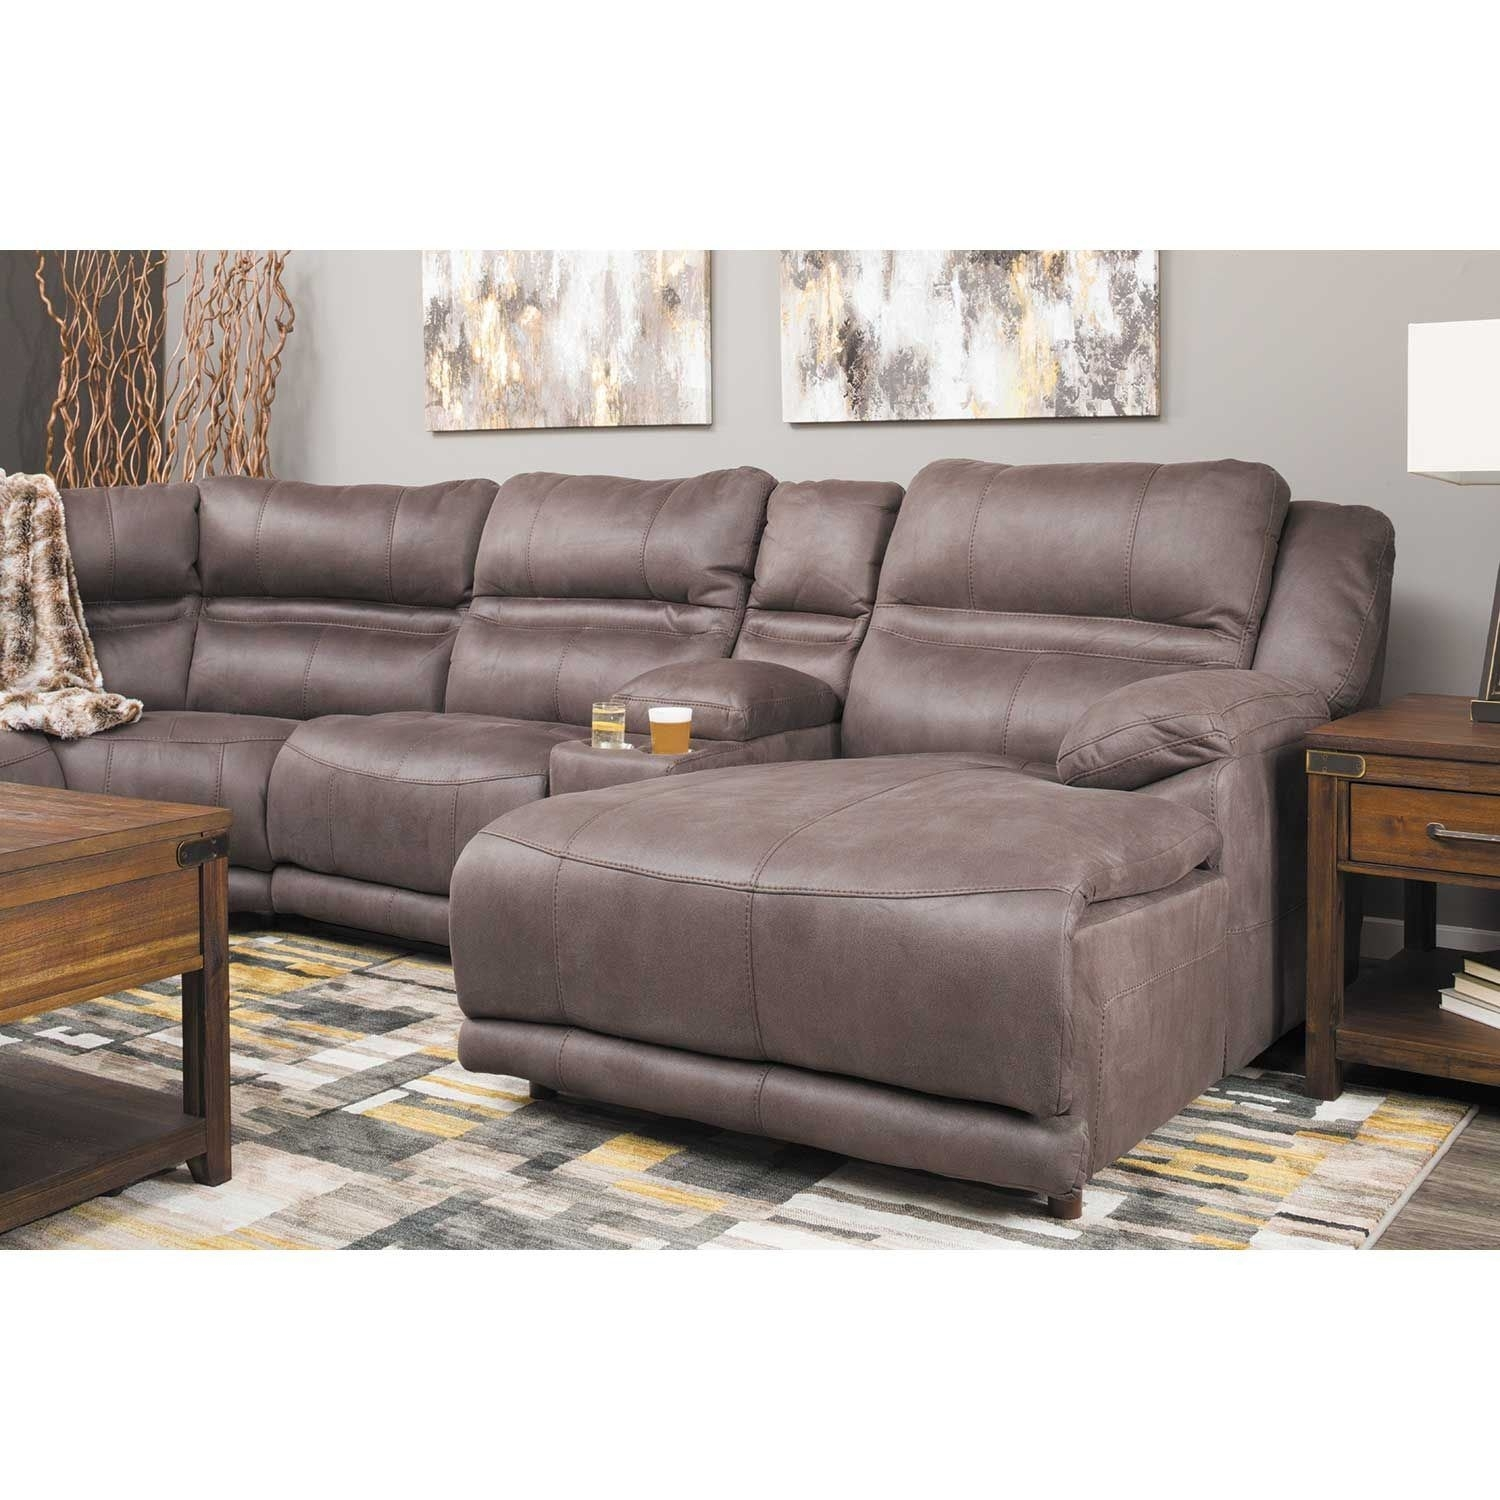 Braxton 6 Piece Power Reclining Sectional With Adjustable Headrest Within Jackson 6 Piece Power Reclining Sectionals With  Sleeper (Image 9 of 25)